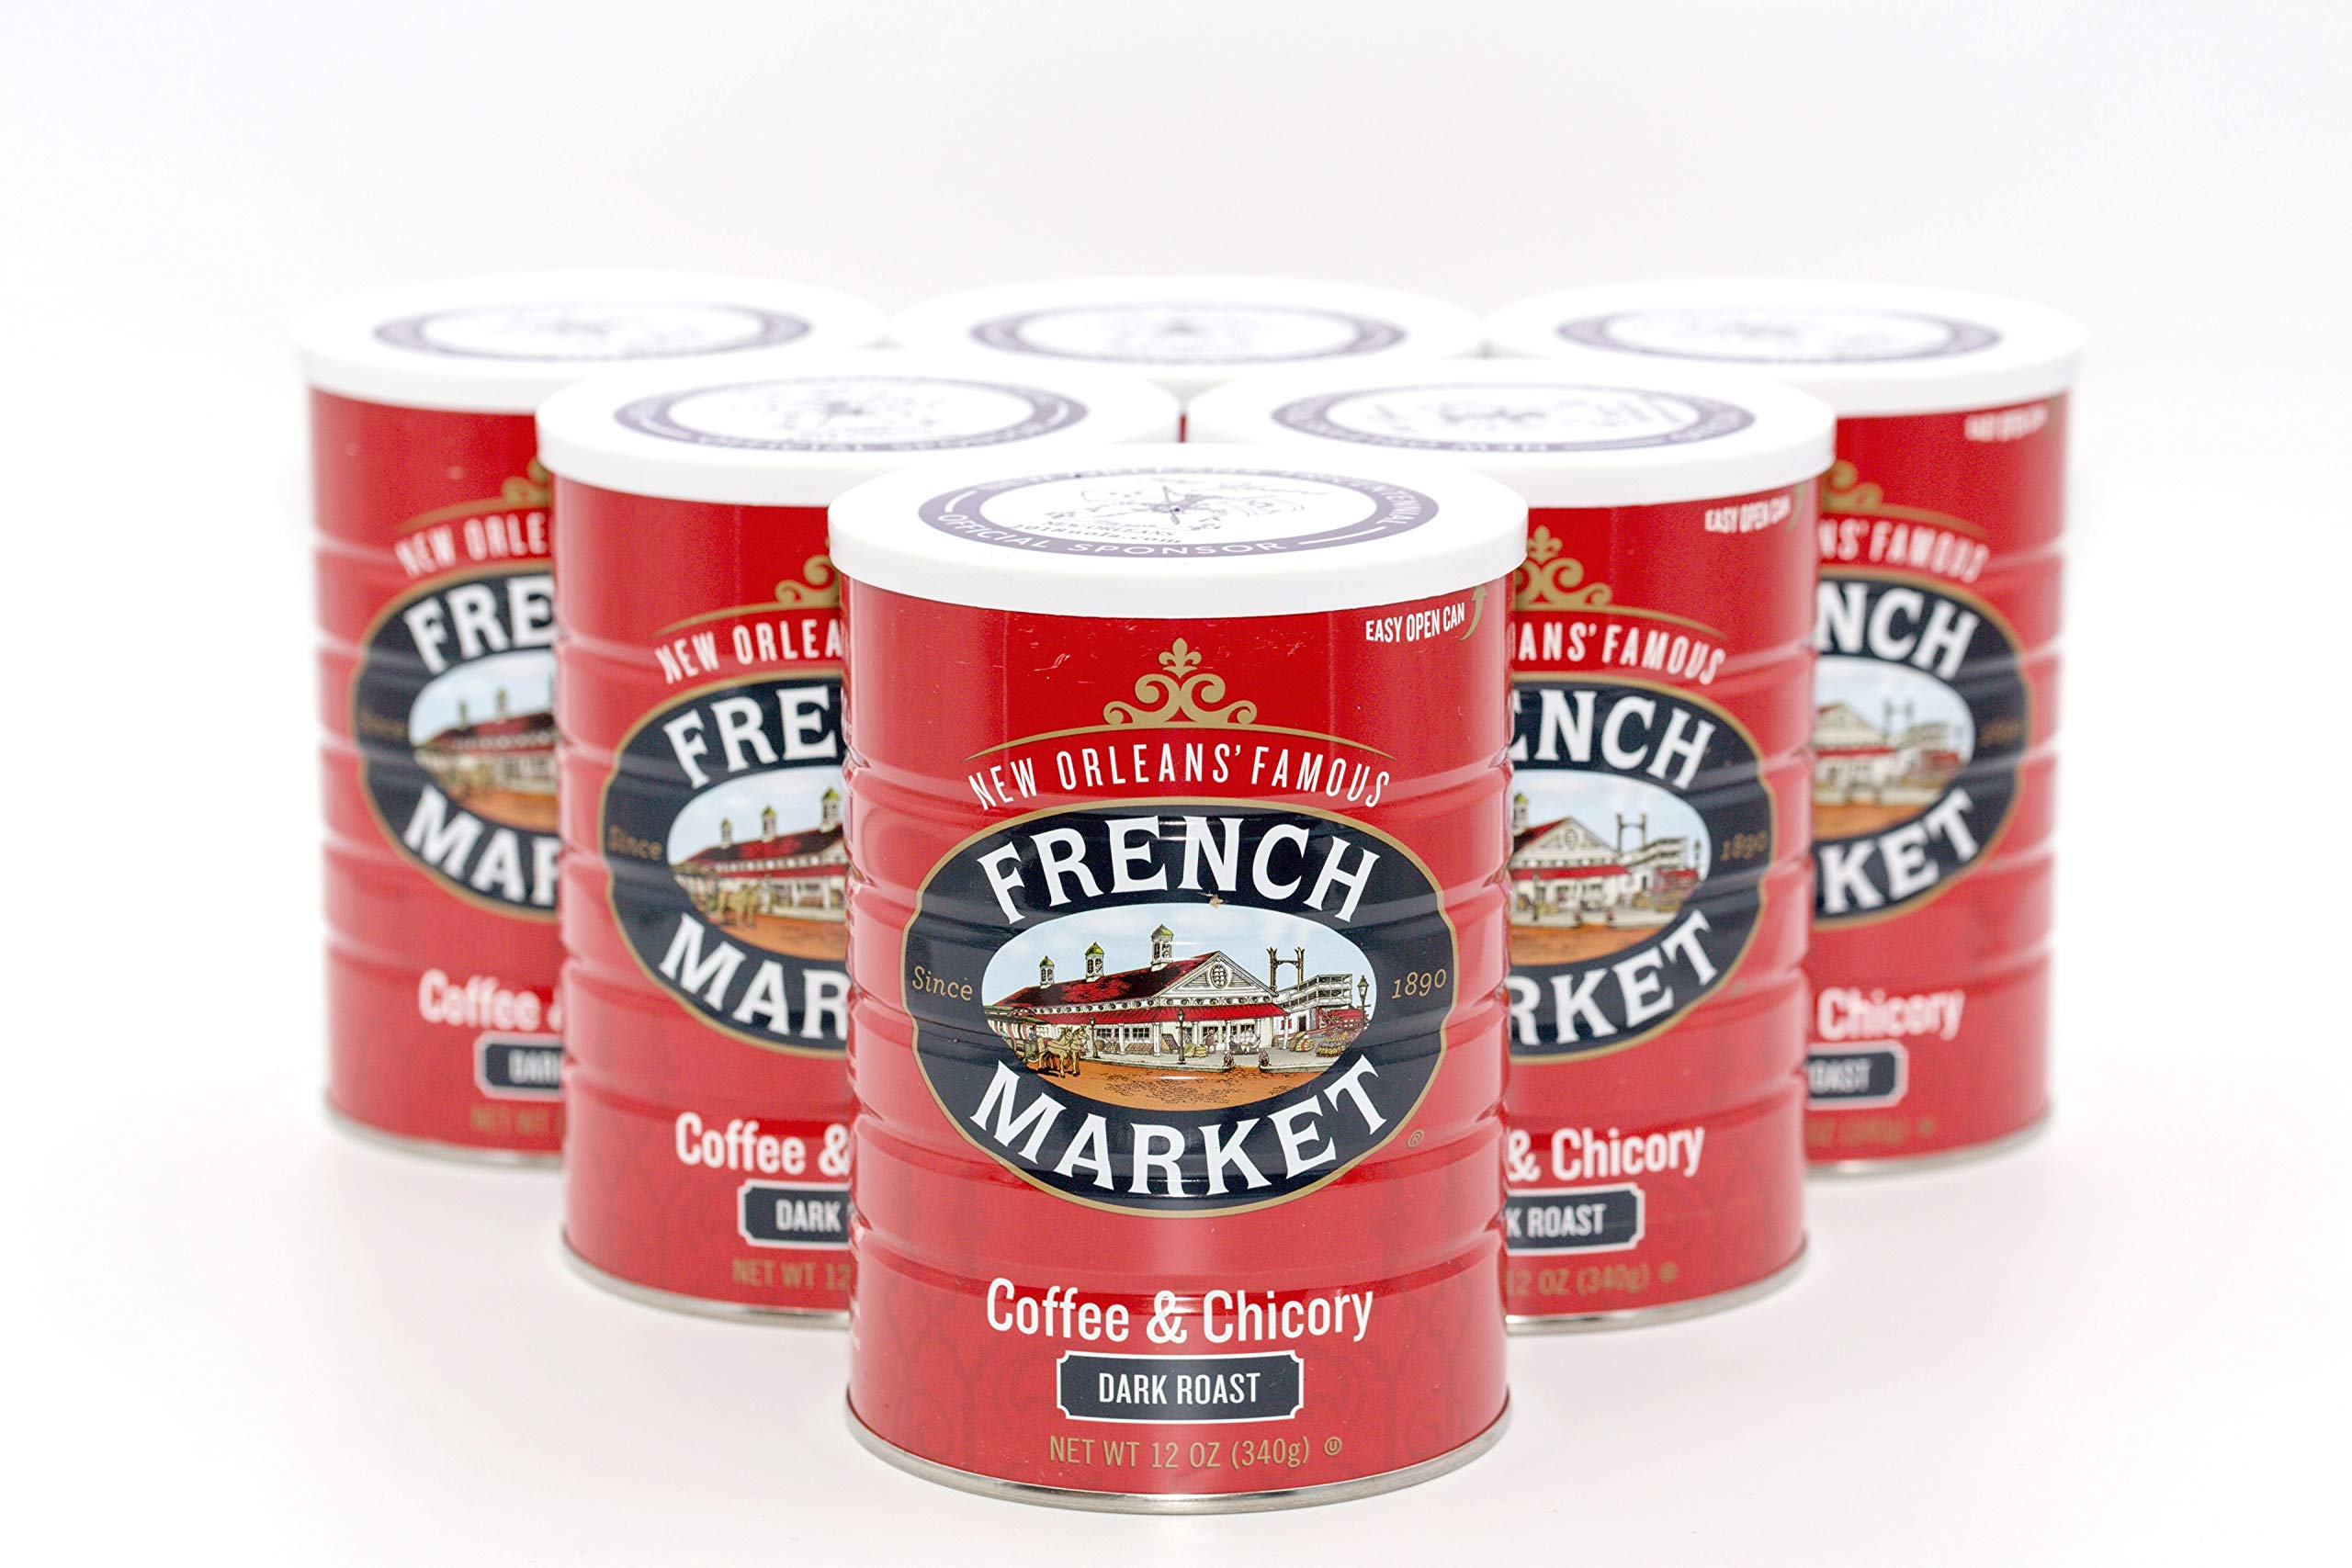 French Market Coffee, Coffee & Chicory, Dark Roast Ground Coffee, 12 Ounce Metal Can (Pack of 6)